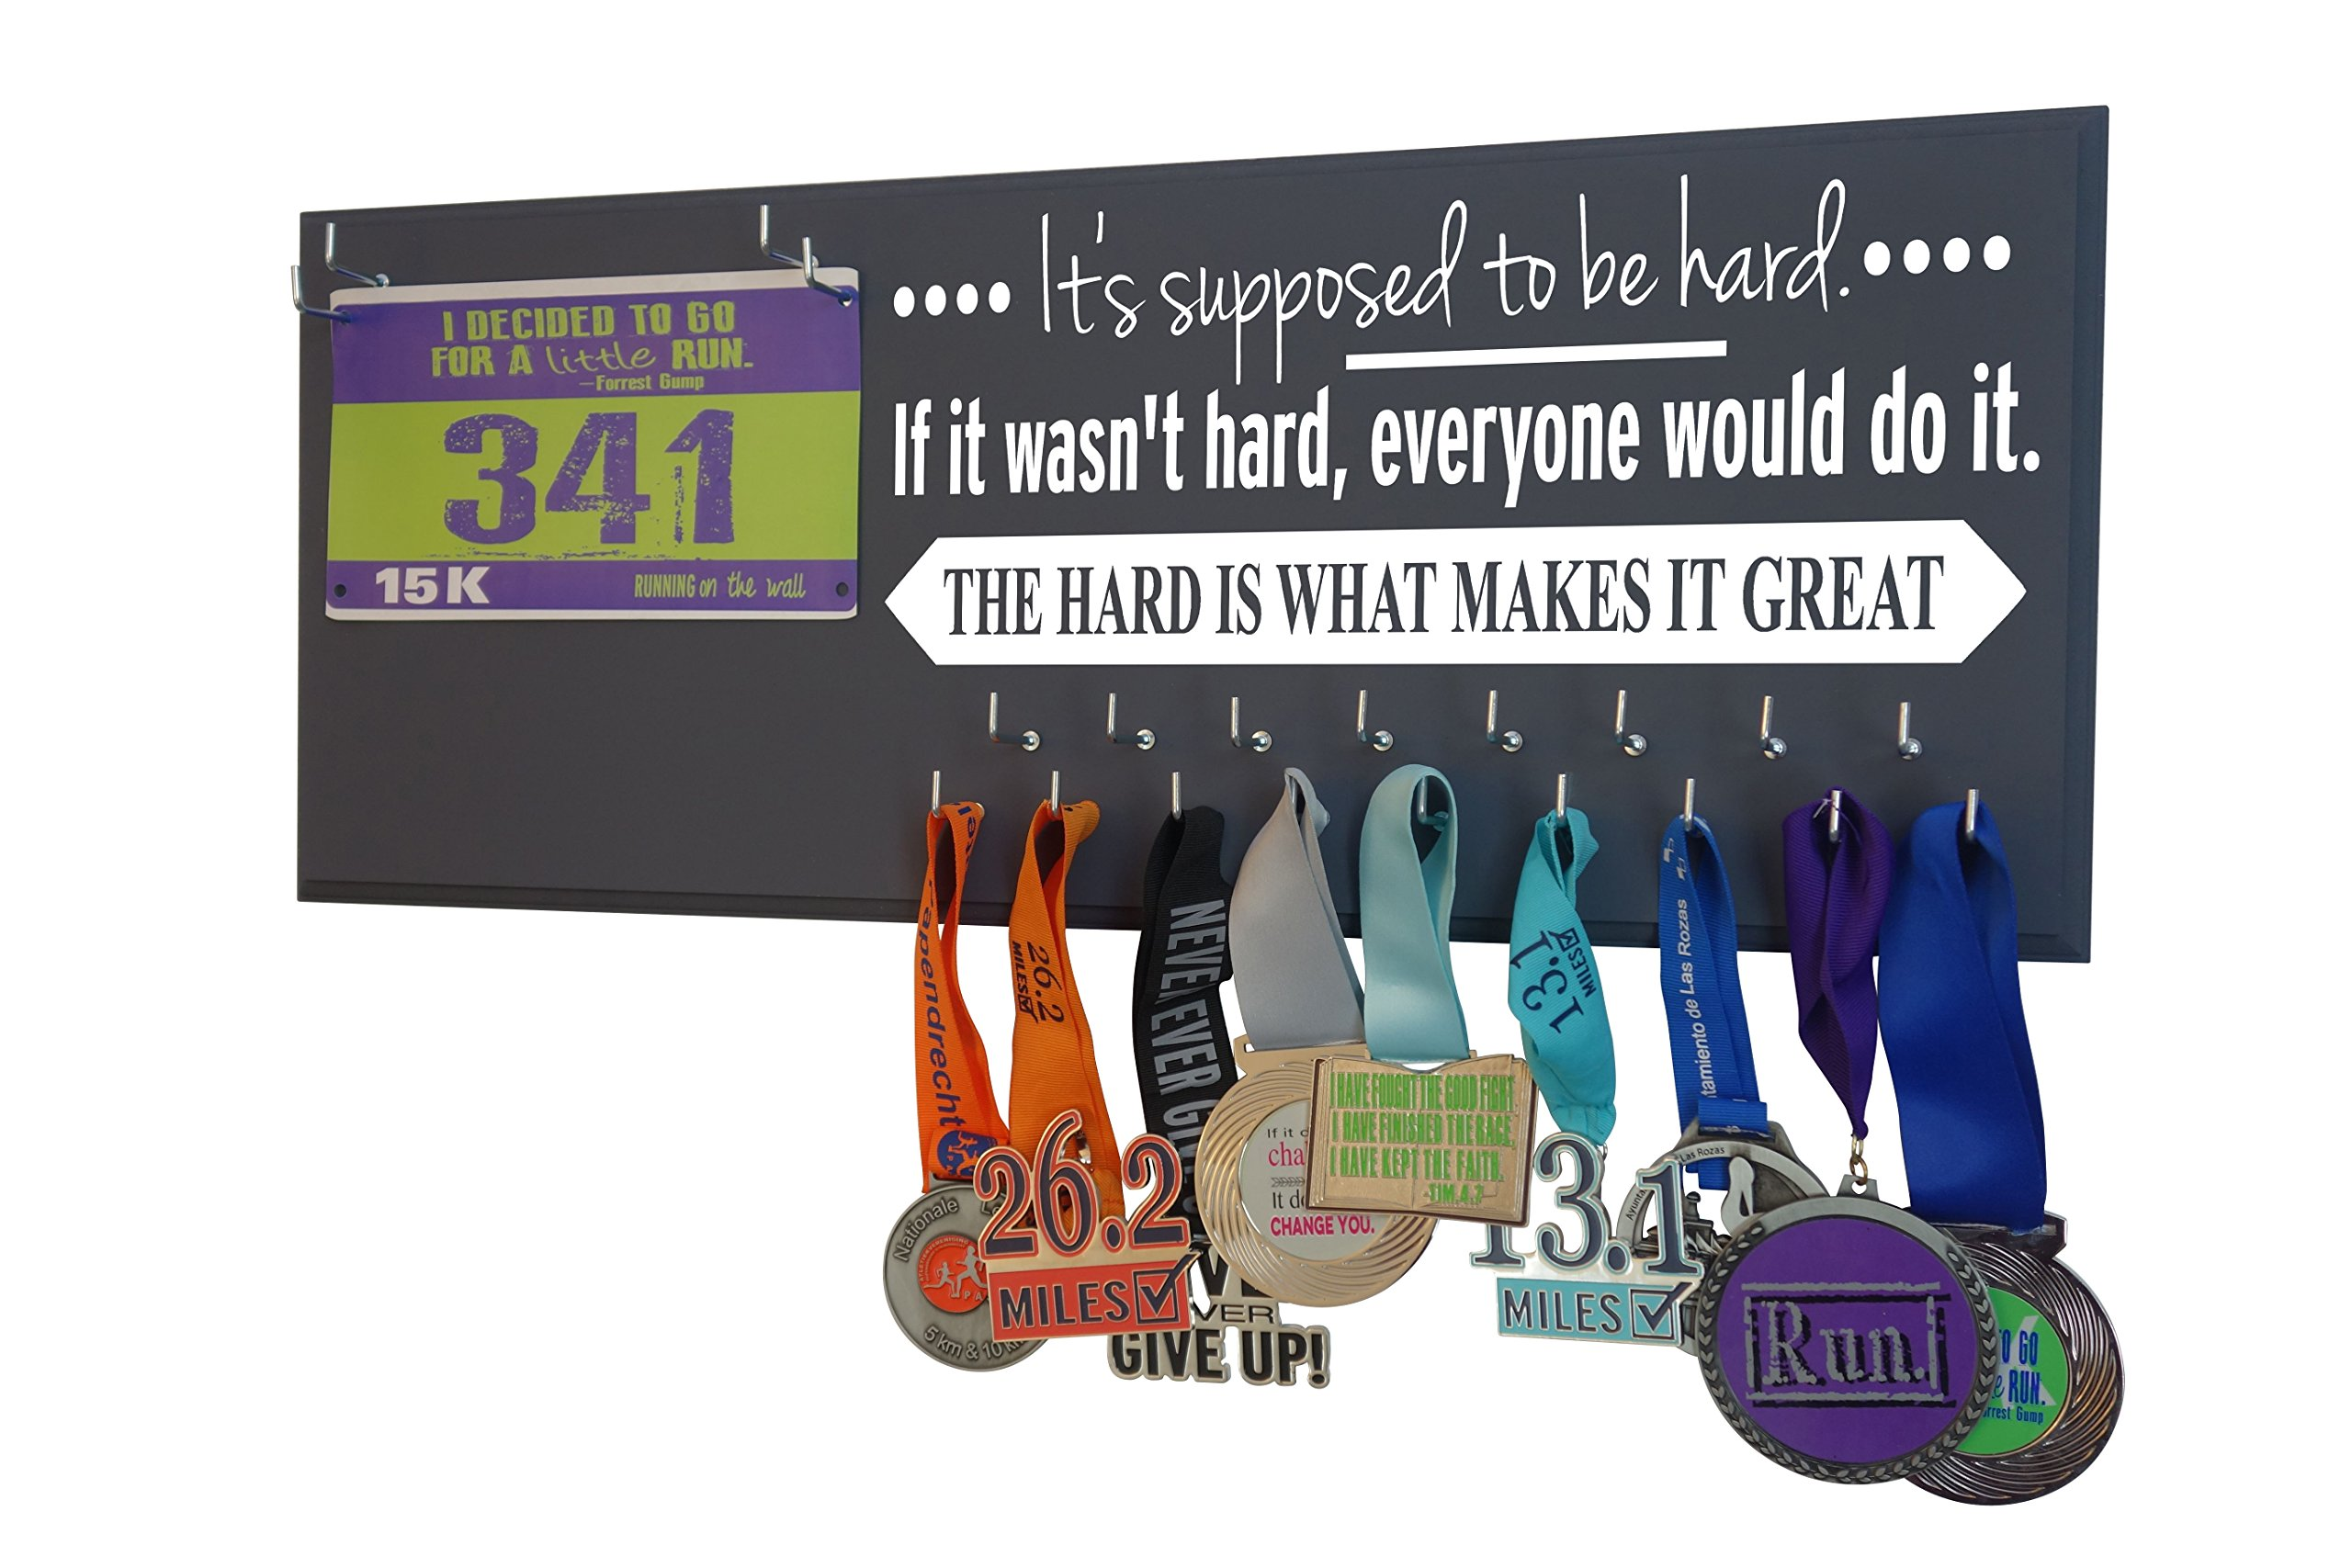 Running On The Wall - Race Bib and Medal Display - Inspirational Quote - Wall Mounted Medal Holder and Hanger for 5Ks, 10Ks, Marathons, Triathlons and More